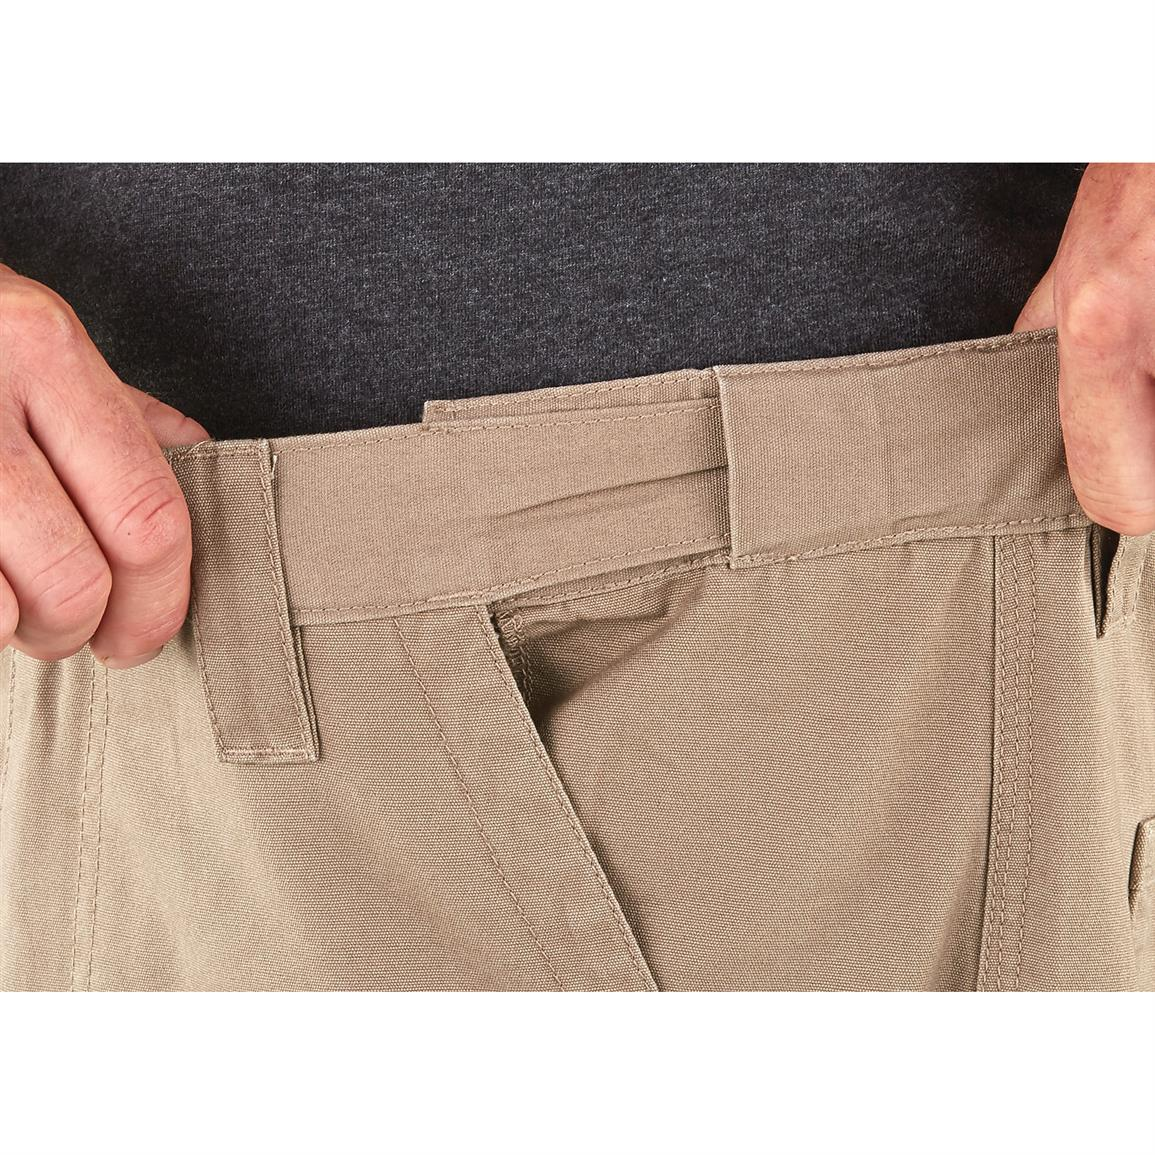 Hidden, self-adjusting waistband for the perfect fit,